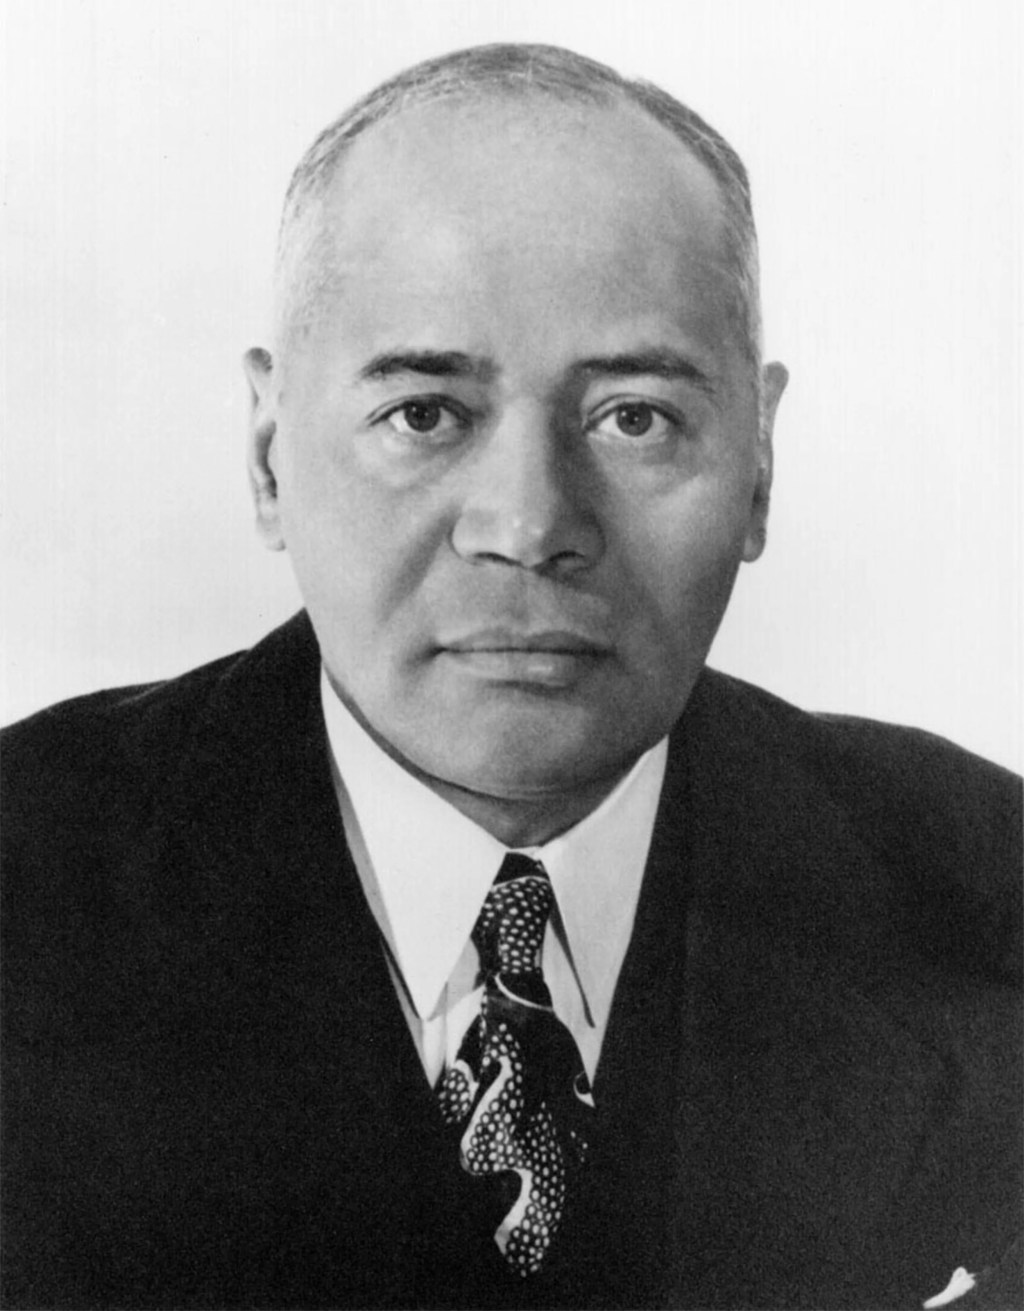 Charles Hamilton Houston. Courtesy of the Charles Hamilton Houston Institute for Race and Justice at Harvard Law School